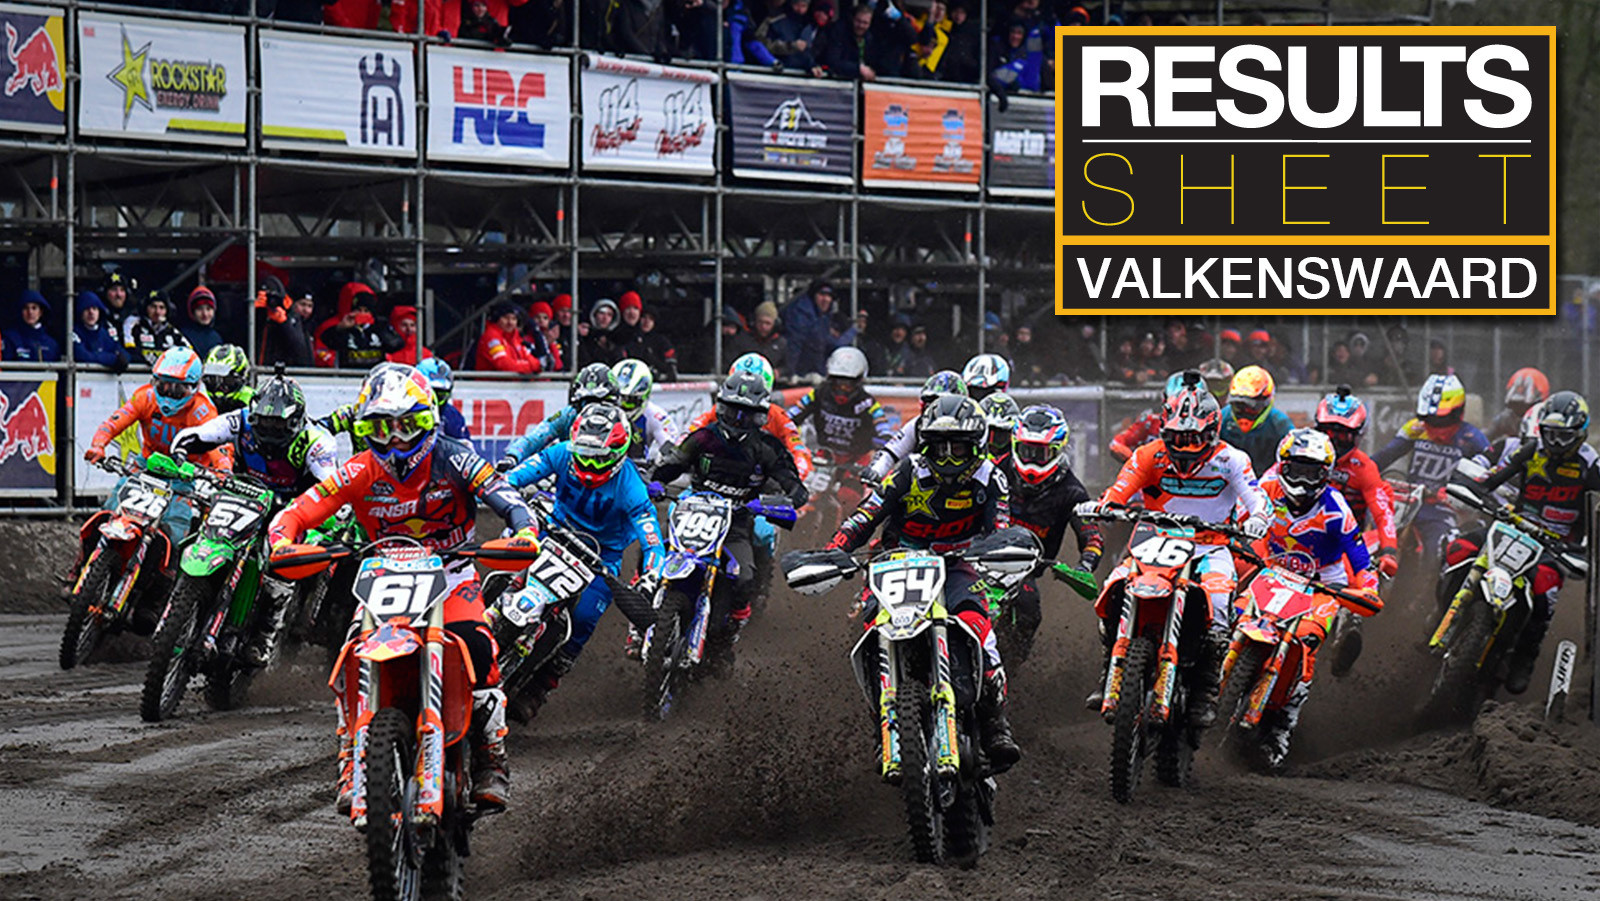 Results Sheet: 2018 MXGP of Valkenswaard